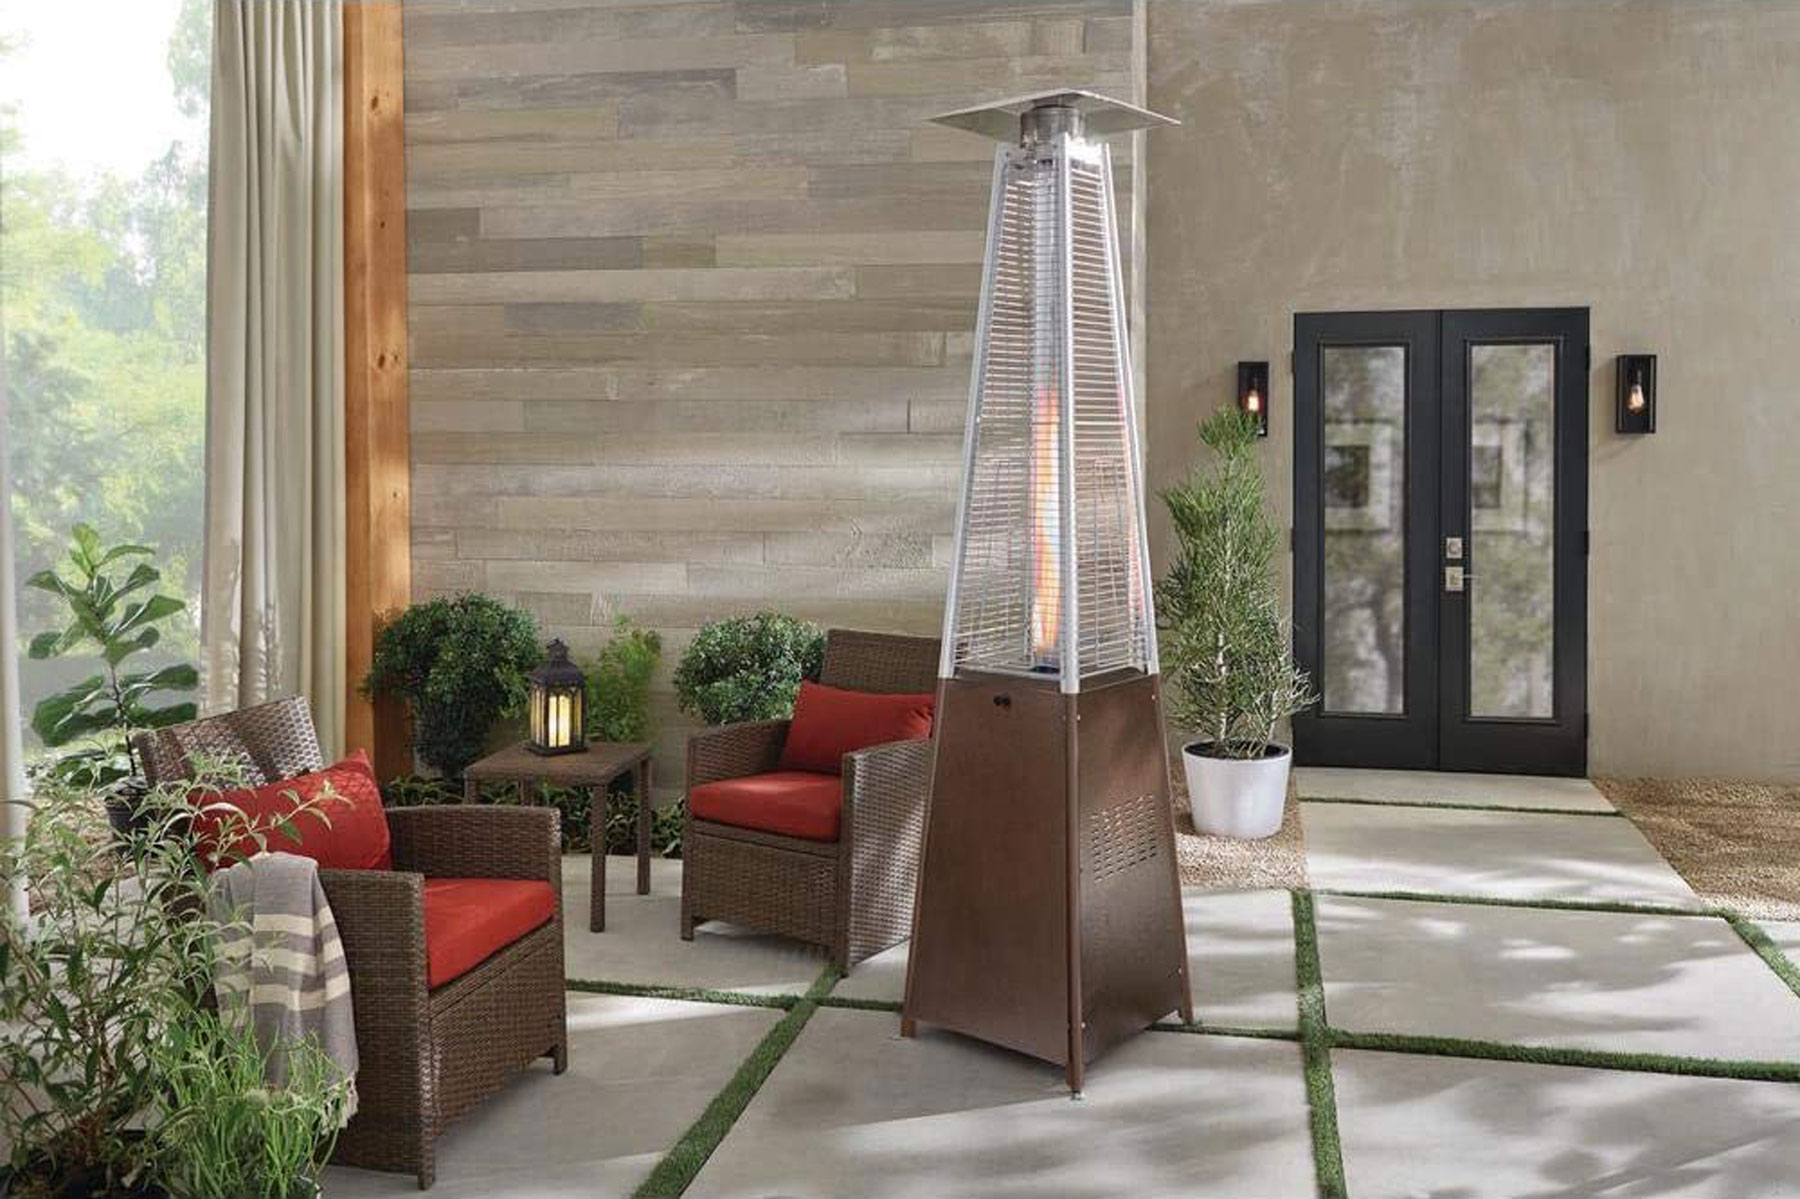 Outdoor heater on patio